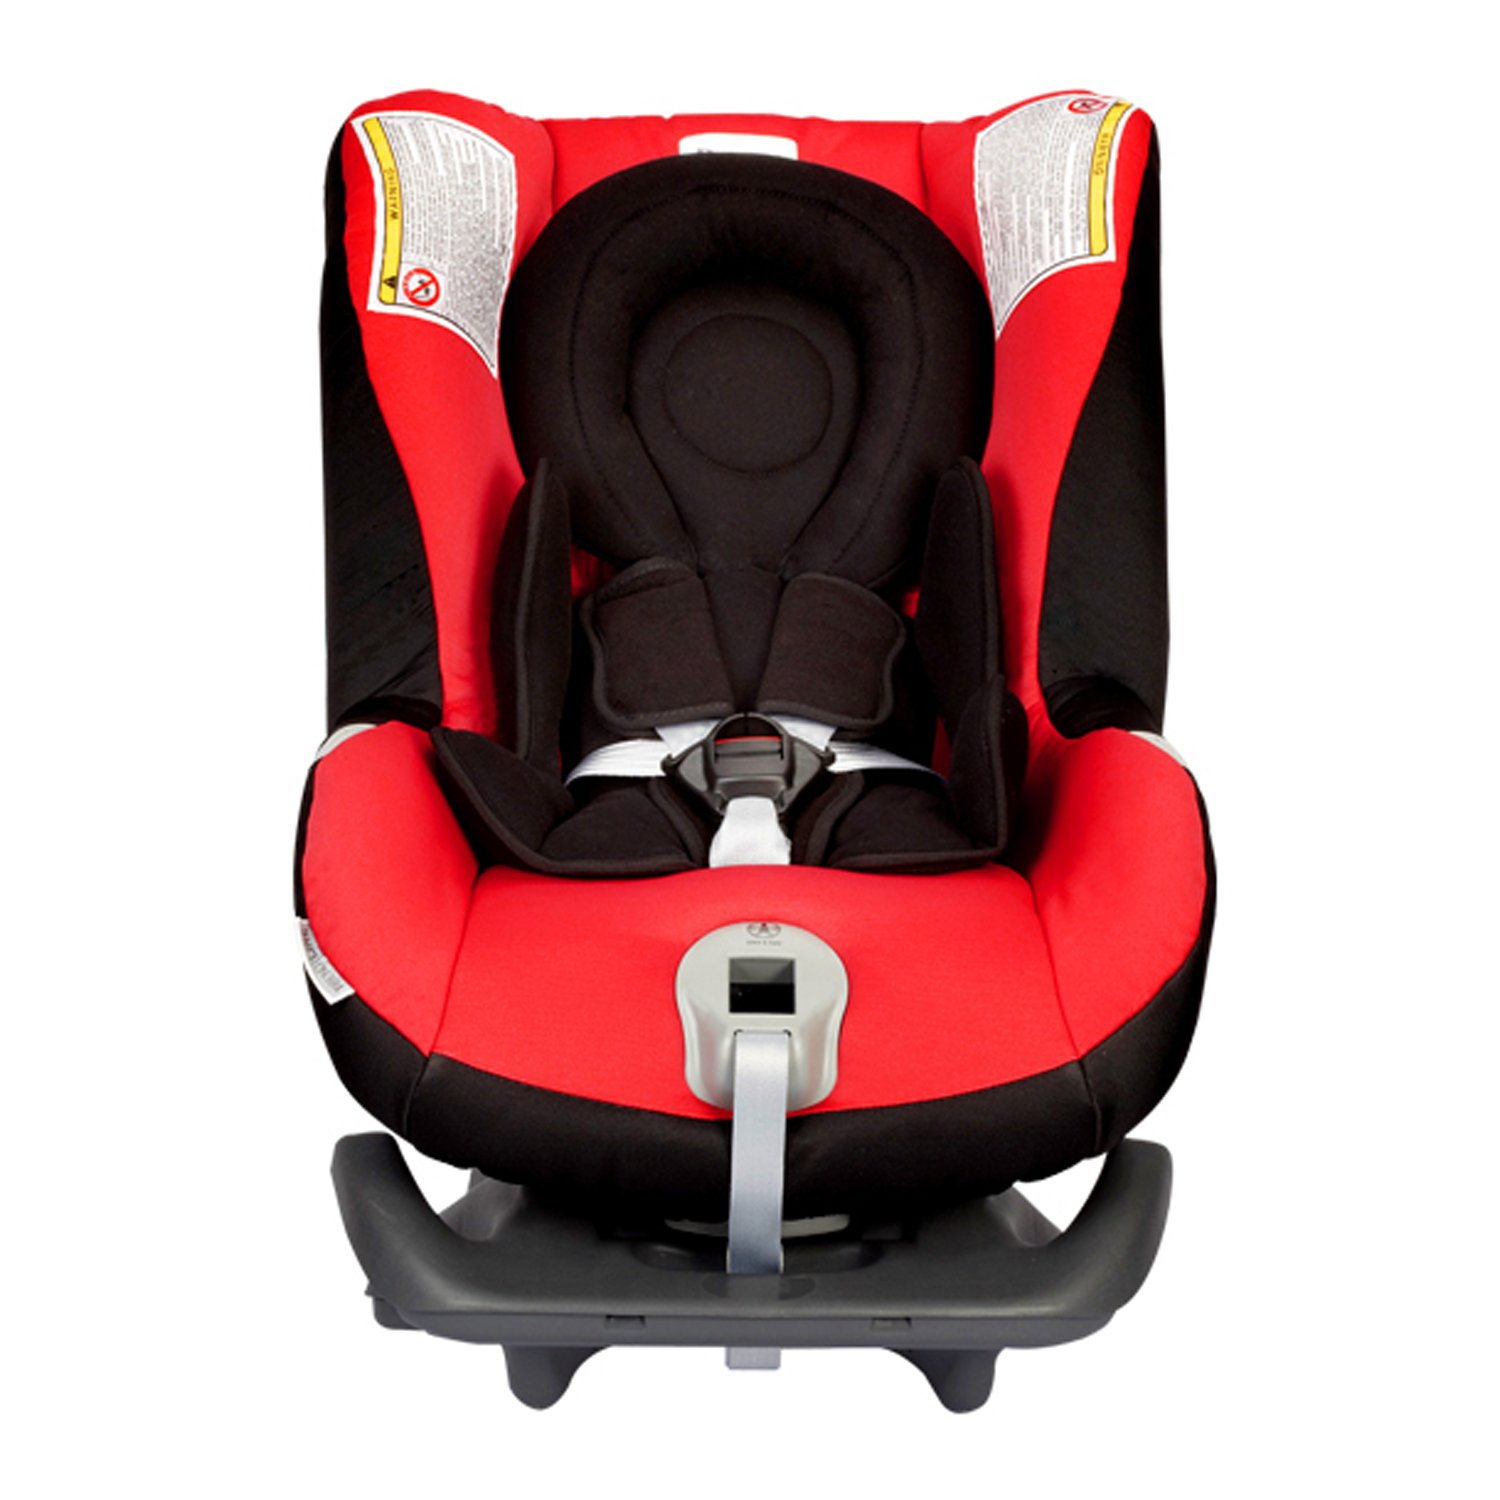 Graco Milestone Car Seat Isofix Most Popular And Recommended Car Seats To Get For Your Baby